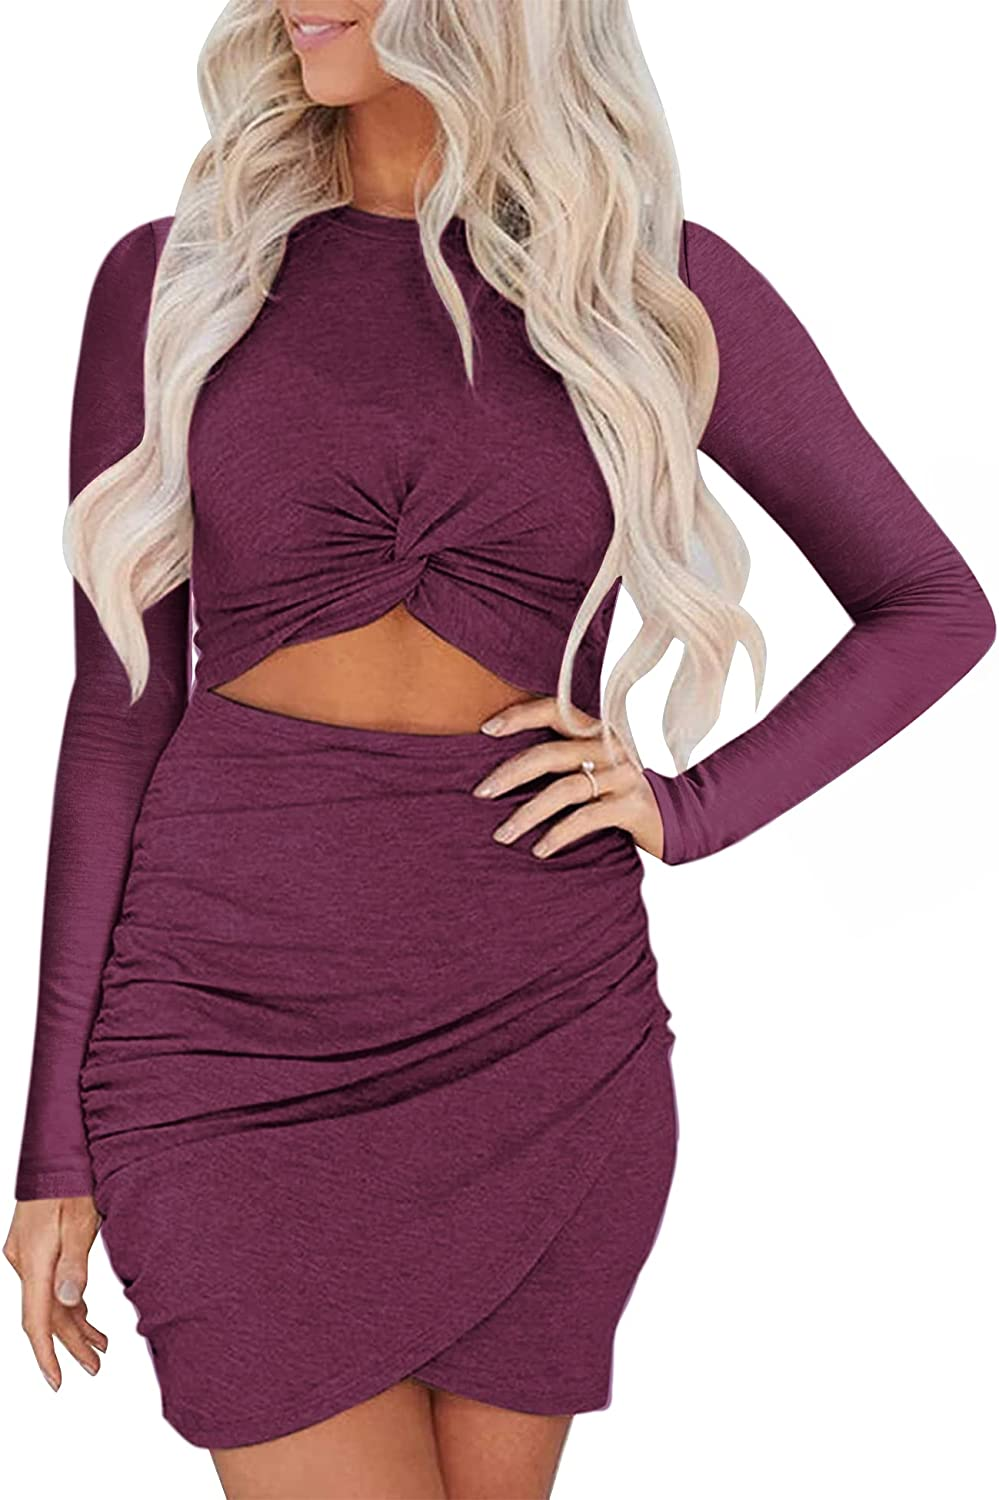 Frolitre Women's Sexy Hollow Out Twist Bodycon Party Mini Dresses Long Sleeves Wrap Sexy Club Dresses